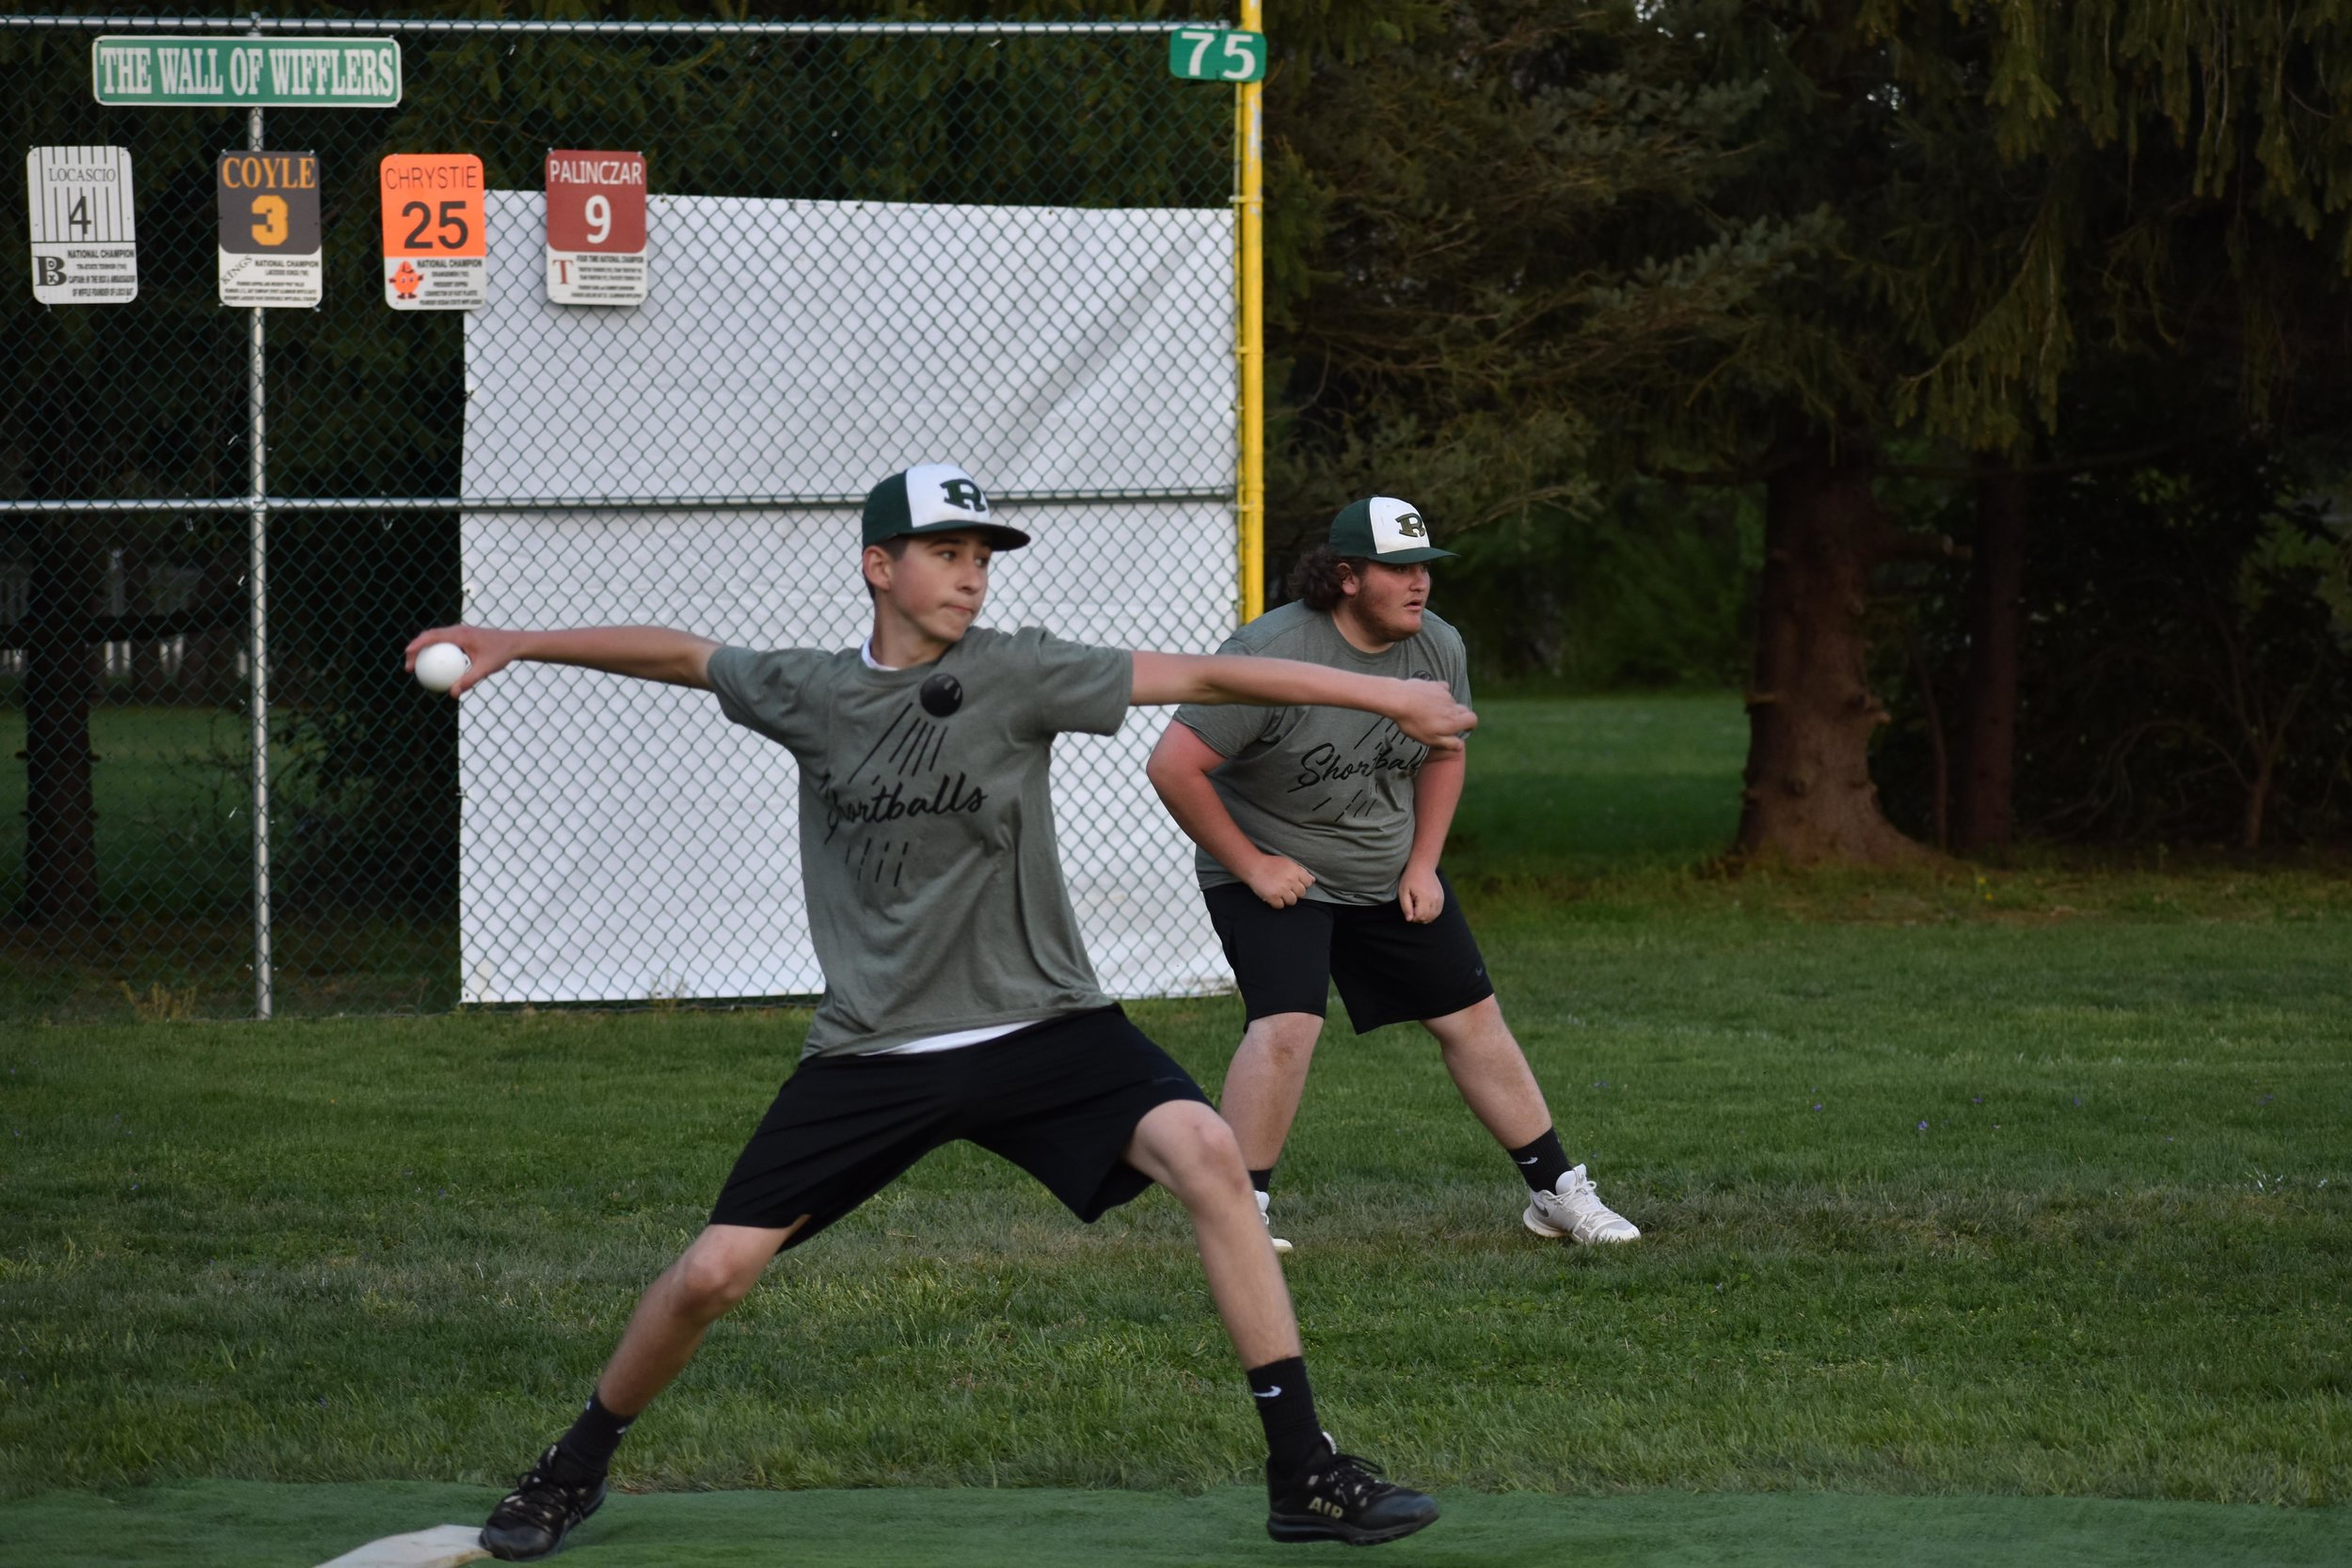 Teddy Drecher throws a pitch in the championship game as second baseman Vinny Albanese gets ready to field a potential ball in play (April 20, 2019)